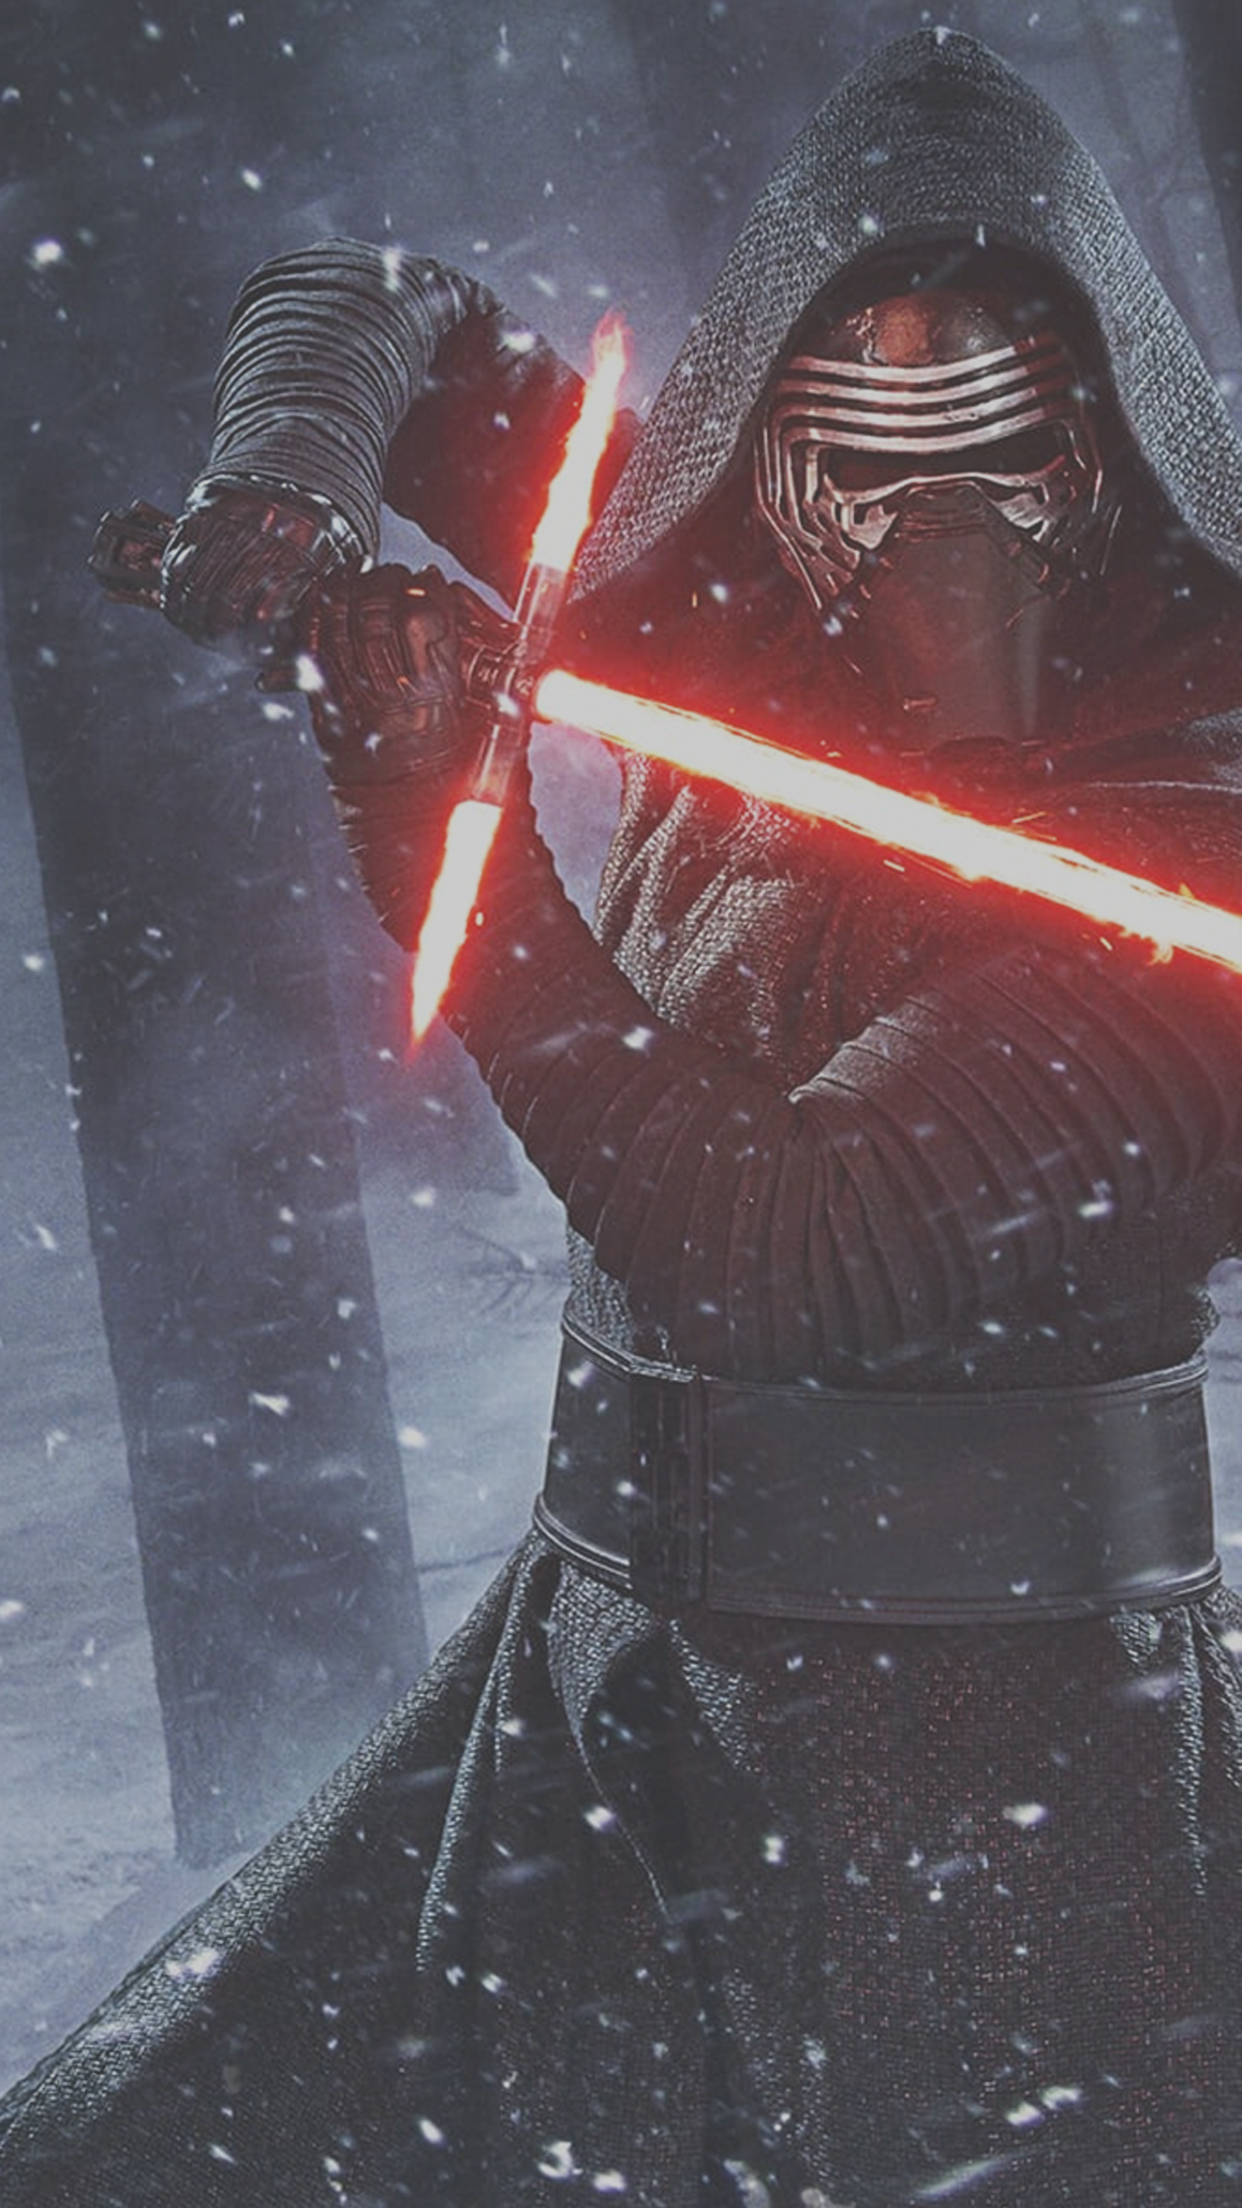 Star Wars The Force Awakens Kylo Ren Lightsaber Wallpaper iDeviceArt